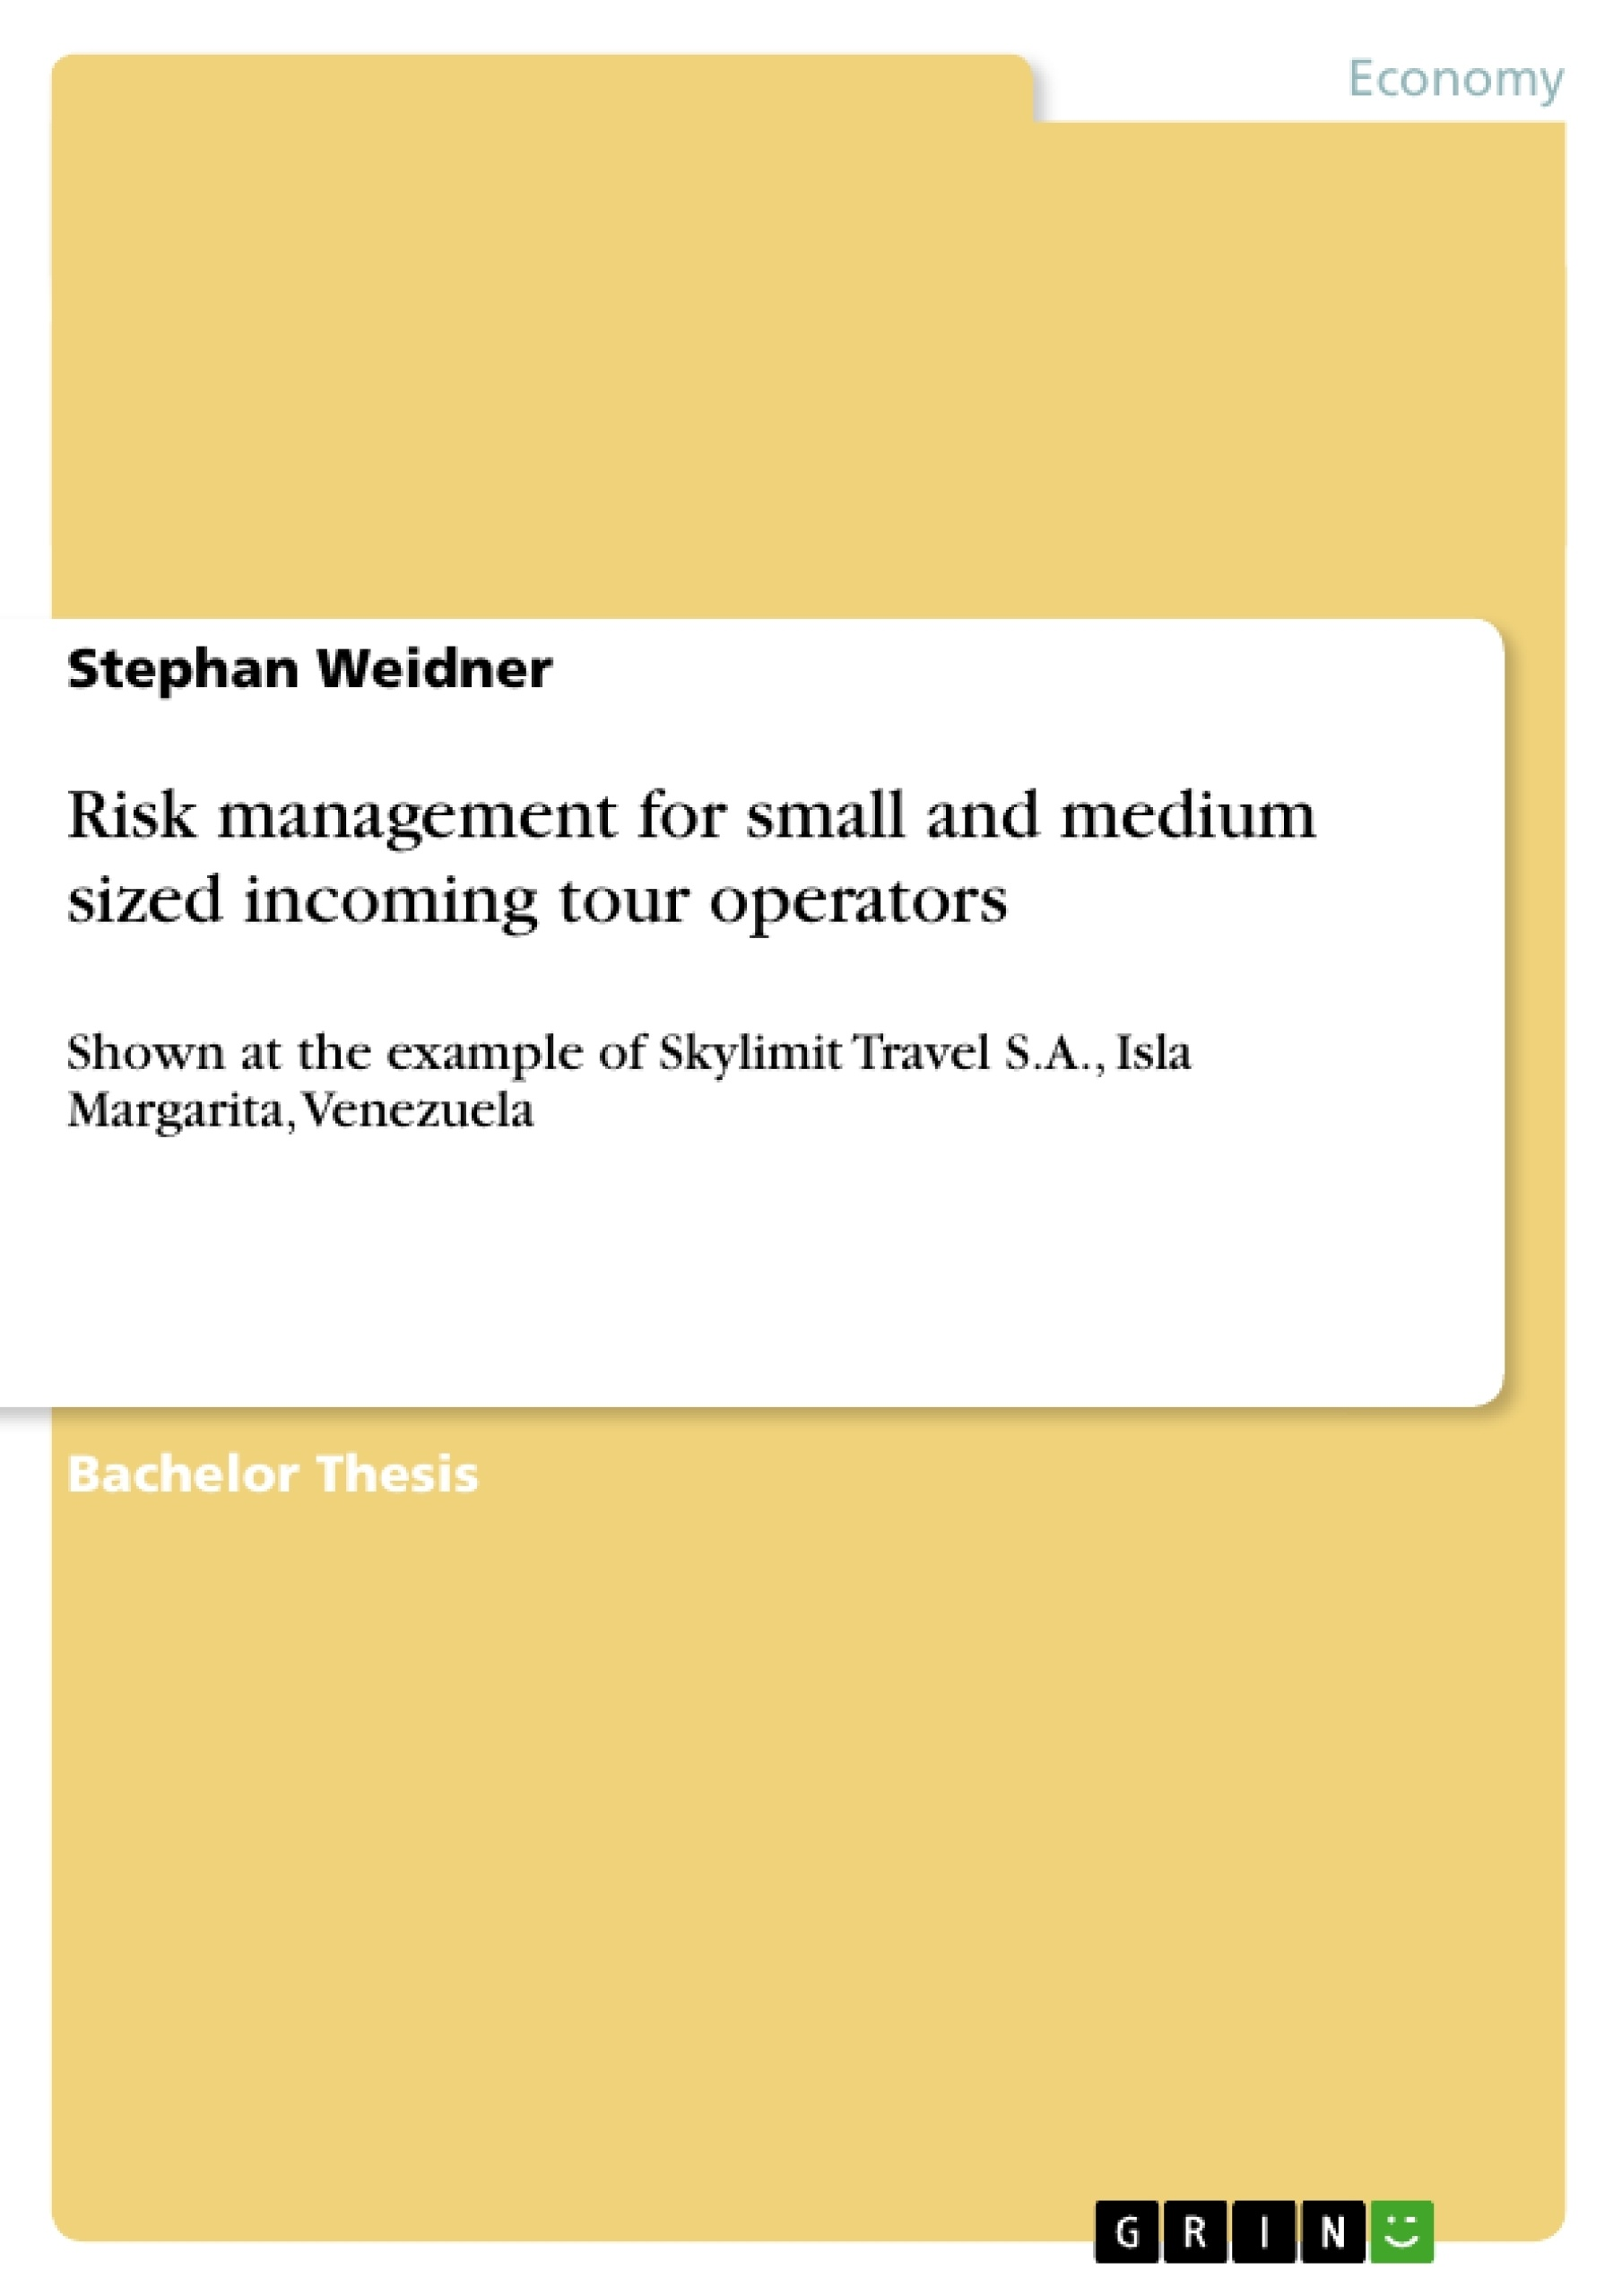 Title: Risk management for small and medium sized incoming tour operators